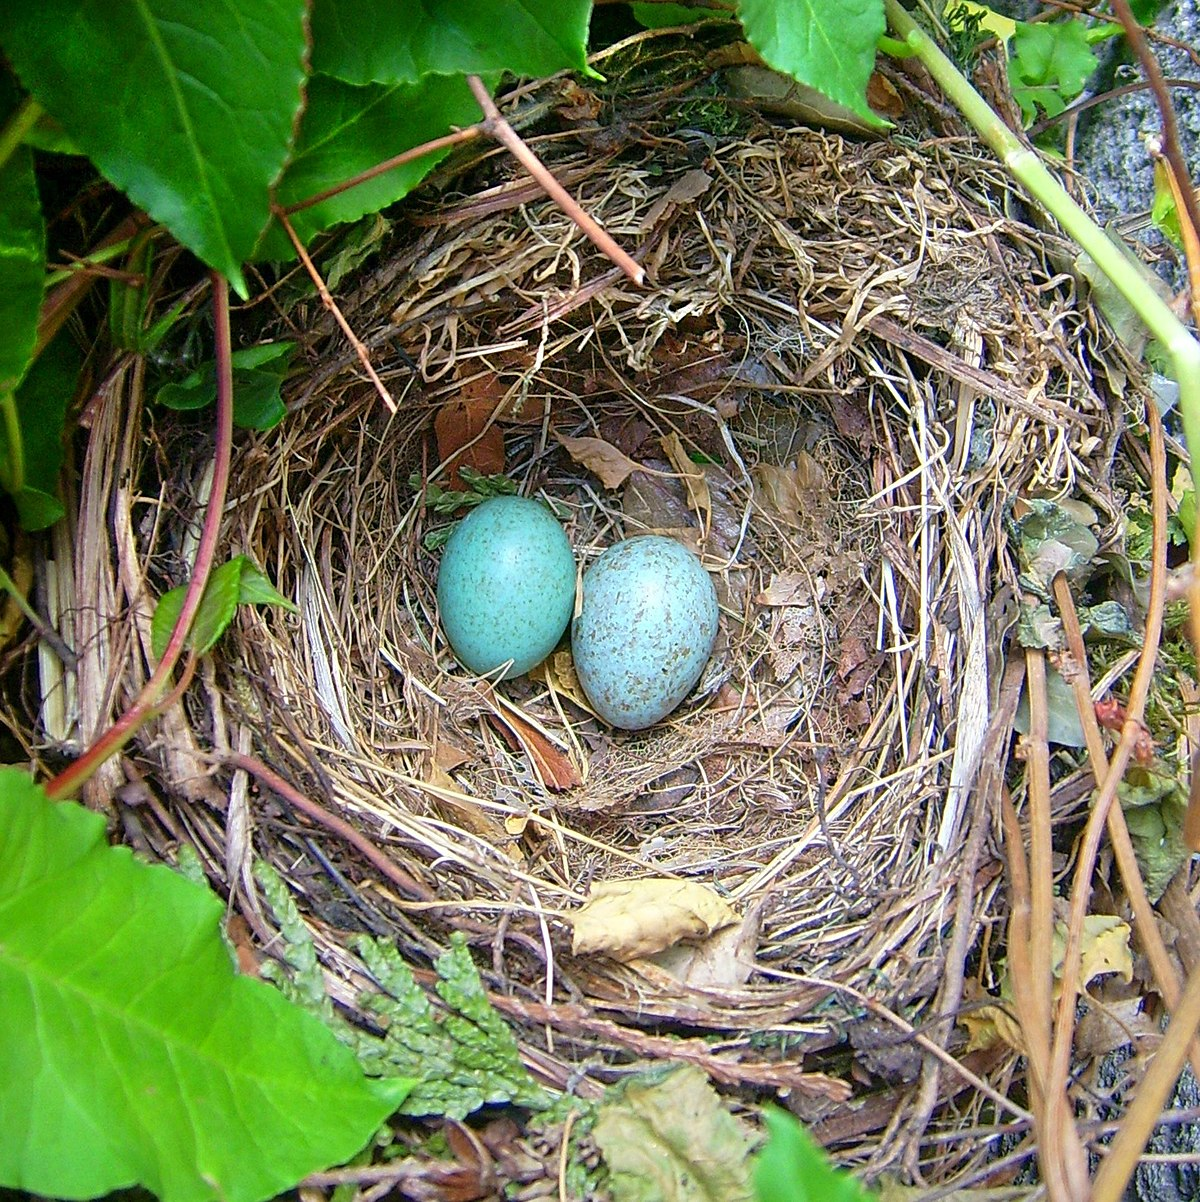 bird nest simple english wikipedia the free encyclopedia